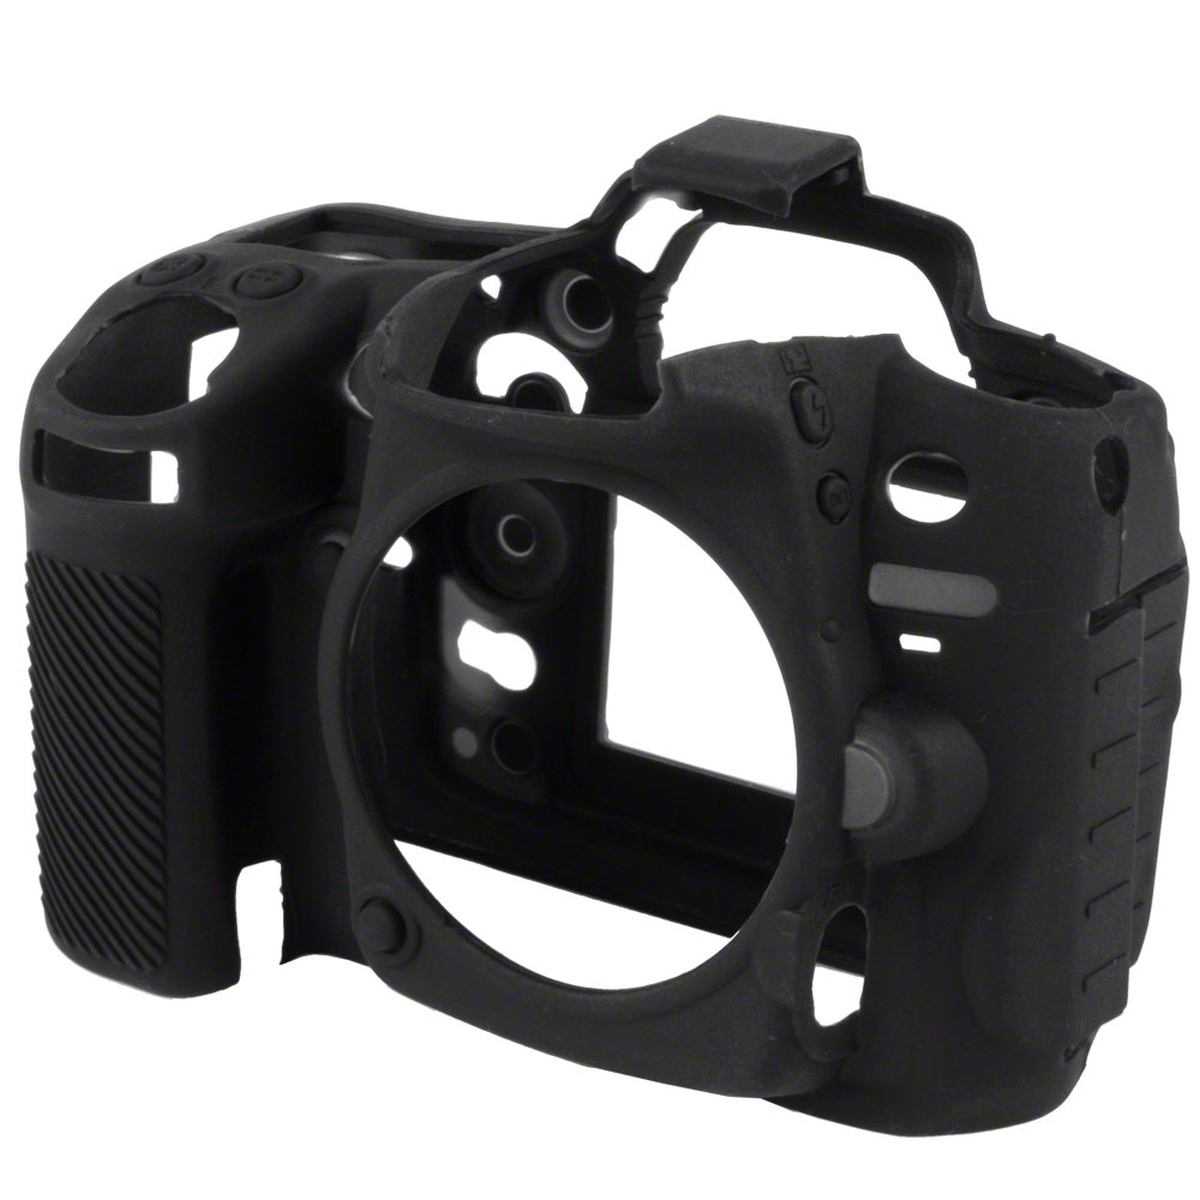 Walimex pro easyCover for Nikon D7000